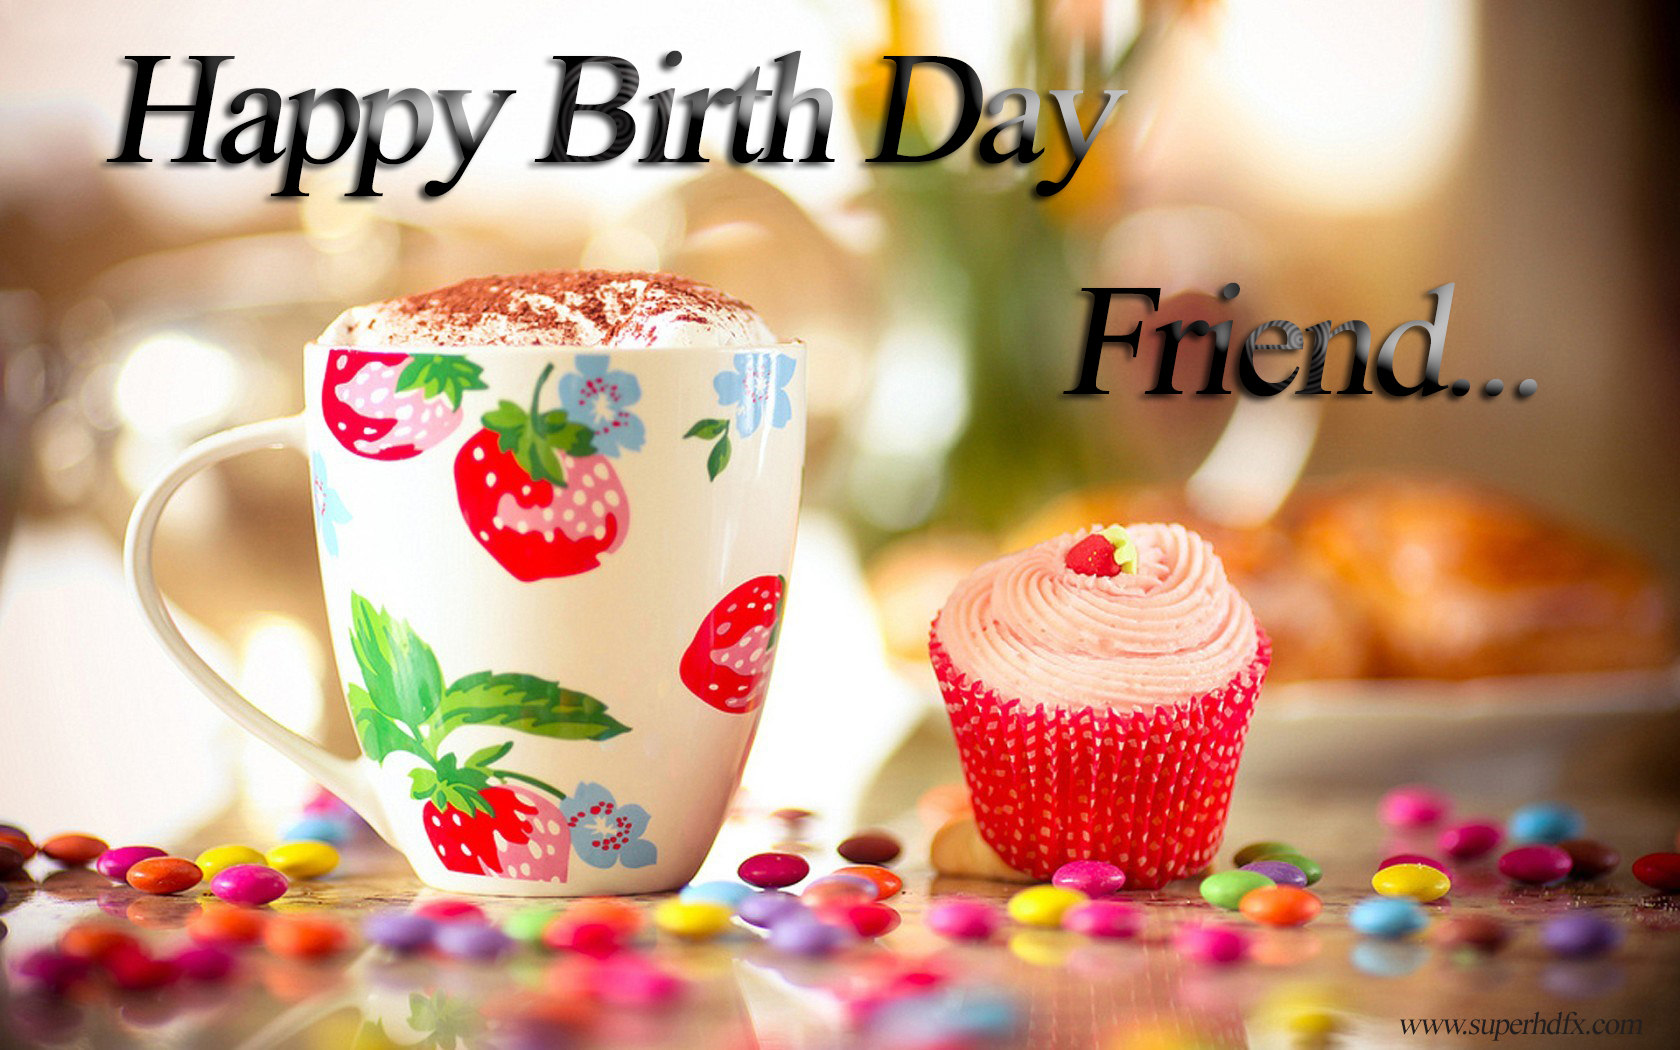 happy birthday special wallpaper ; Happy-Birth-Day-Friend-Wallpaper